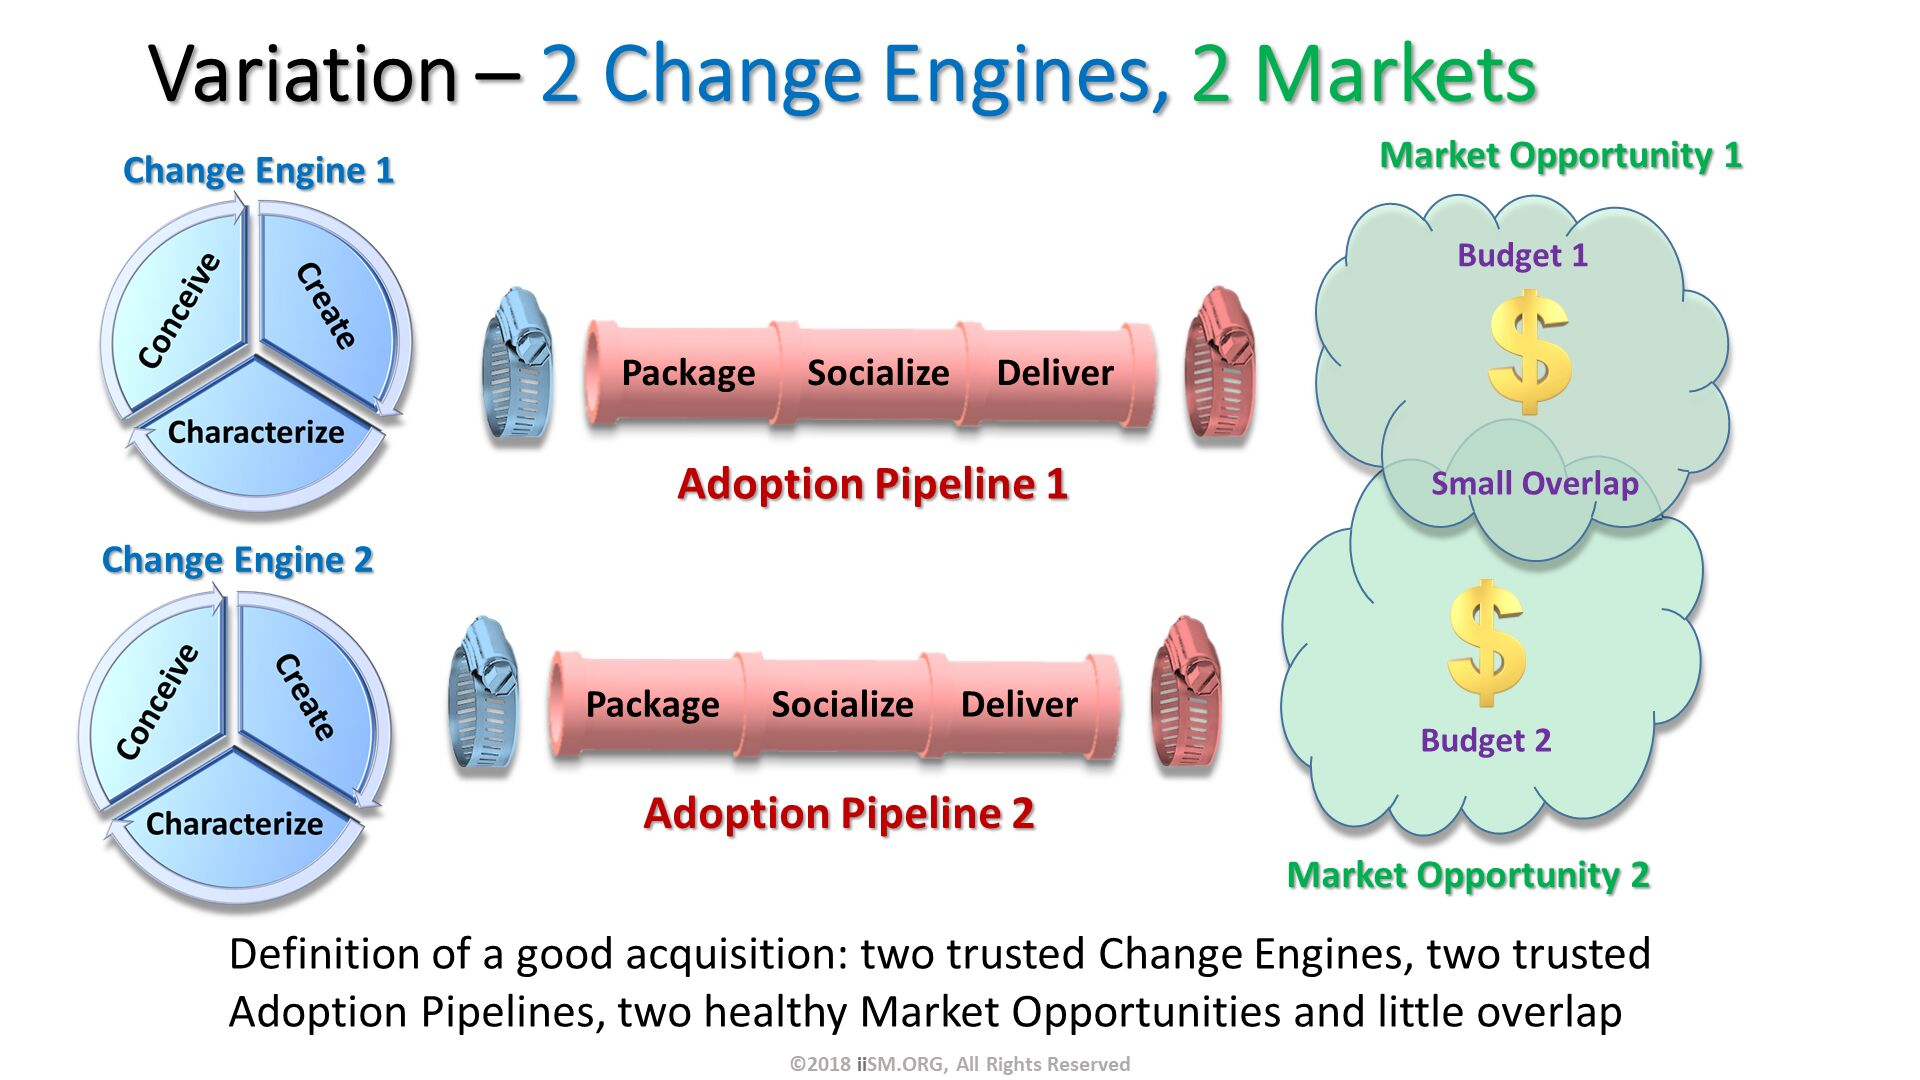 Variation – 2 Change Engines, 2 Markets. Change Engine 1 . Definition of a good acquisition: two trusted Change Engines, two trusted Adoption Pipelines, two healthy Market Opportunities and little overlap . Change Engine 2 . ©2018 iiSM.ORG, All Rights Reserved.